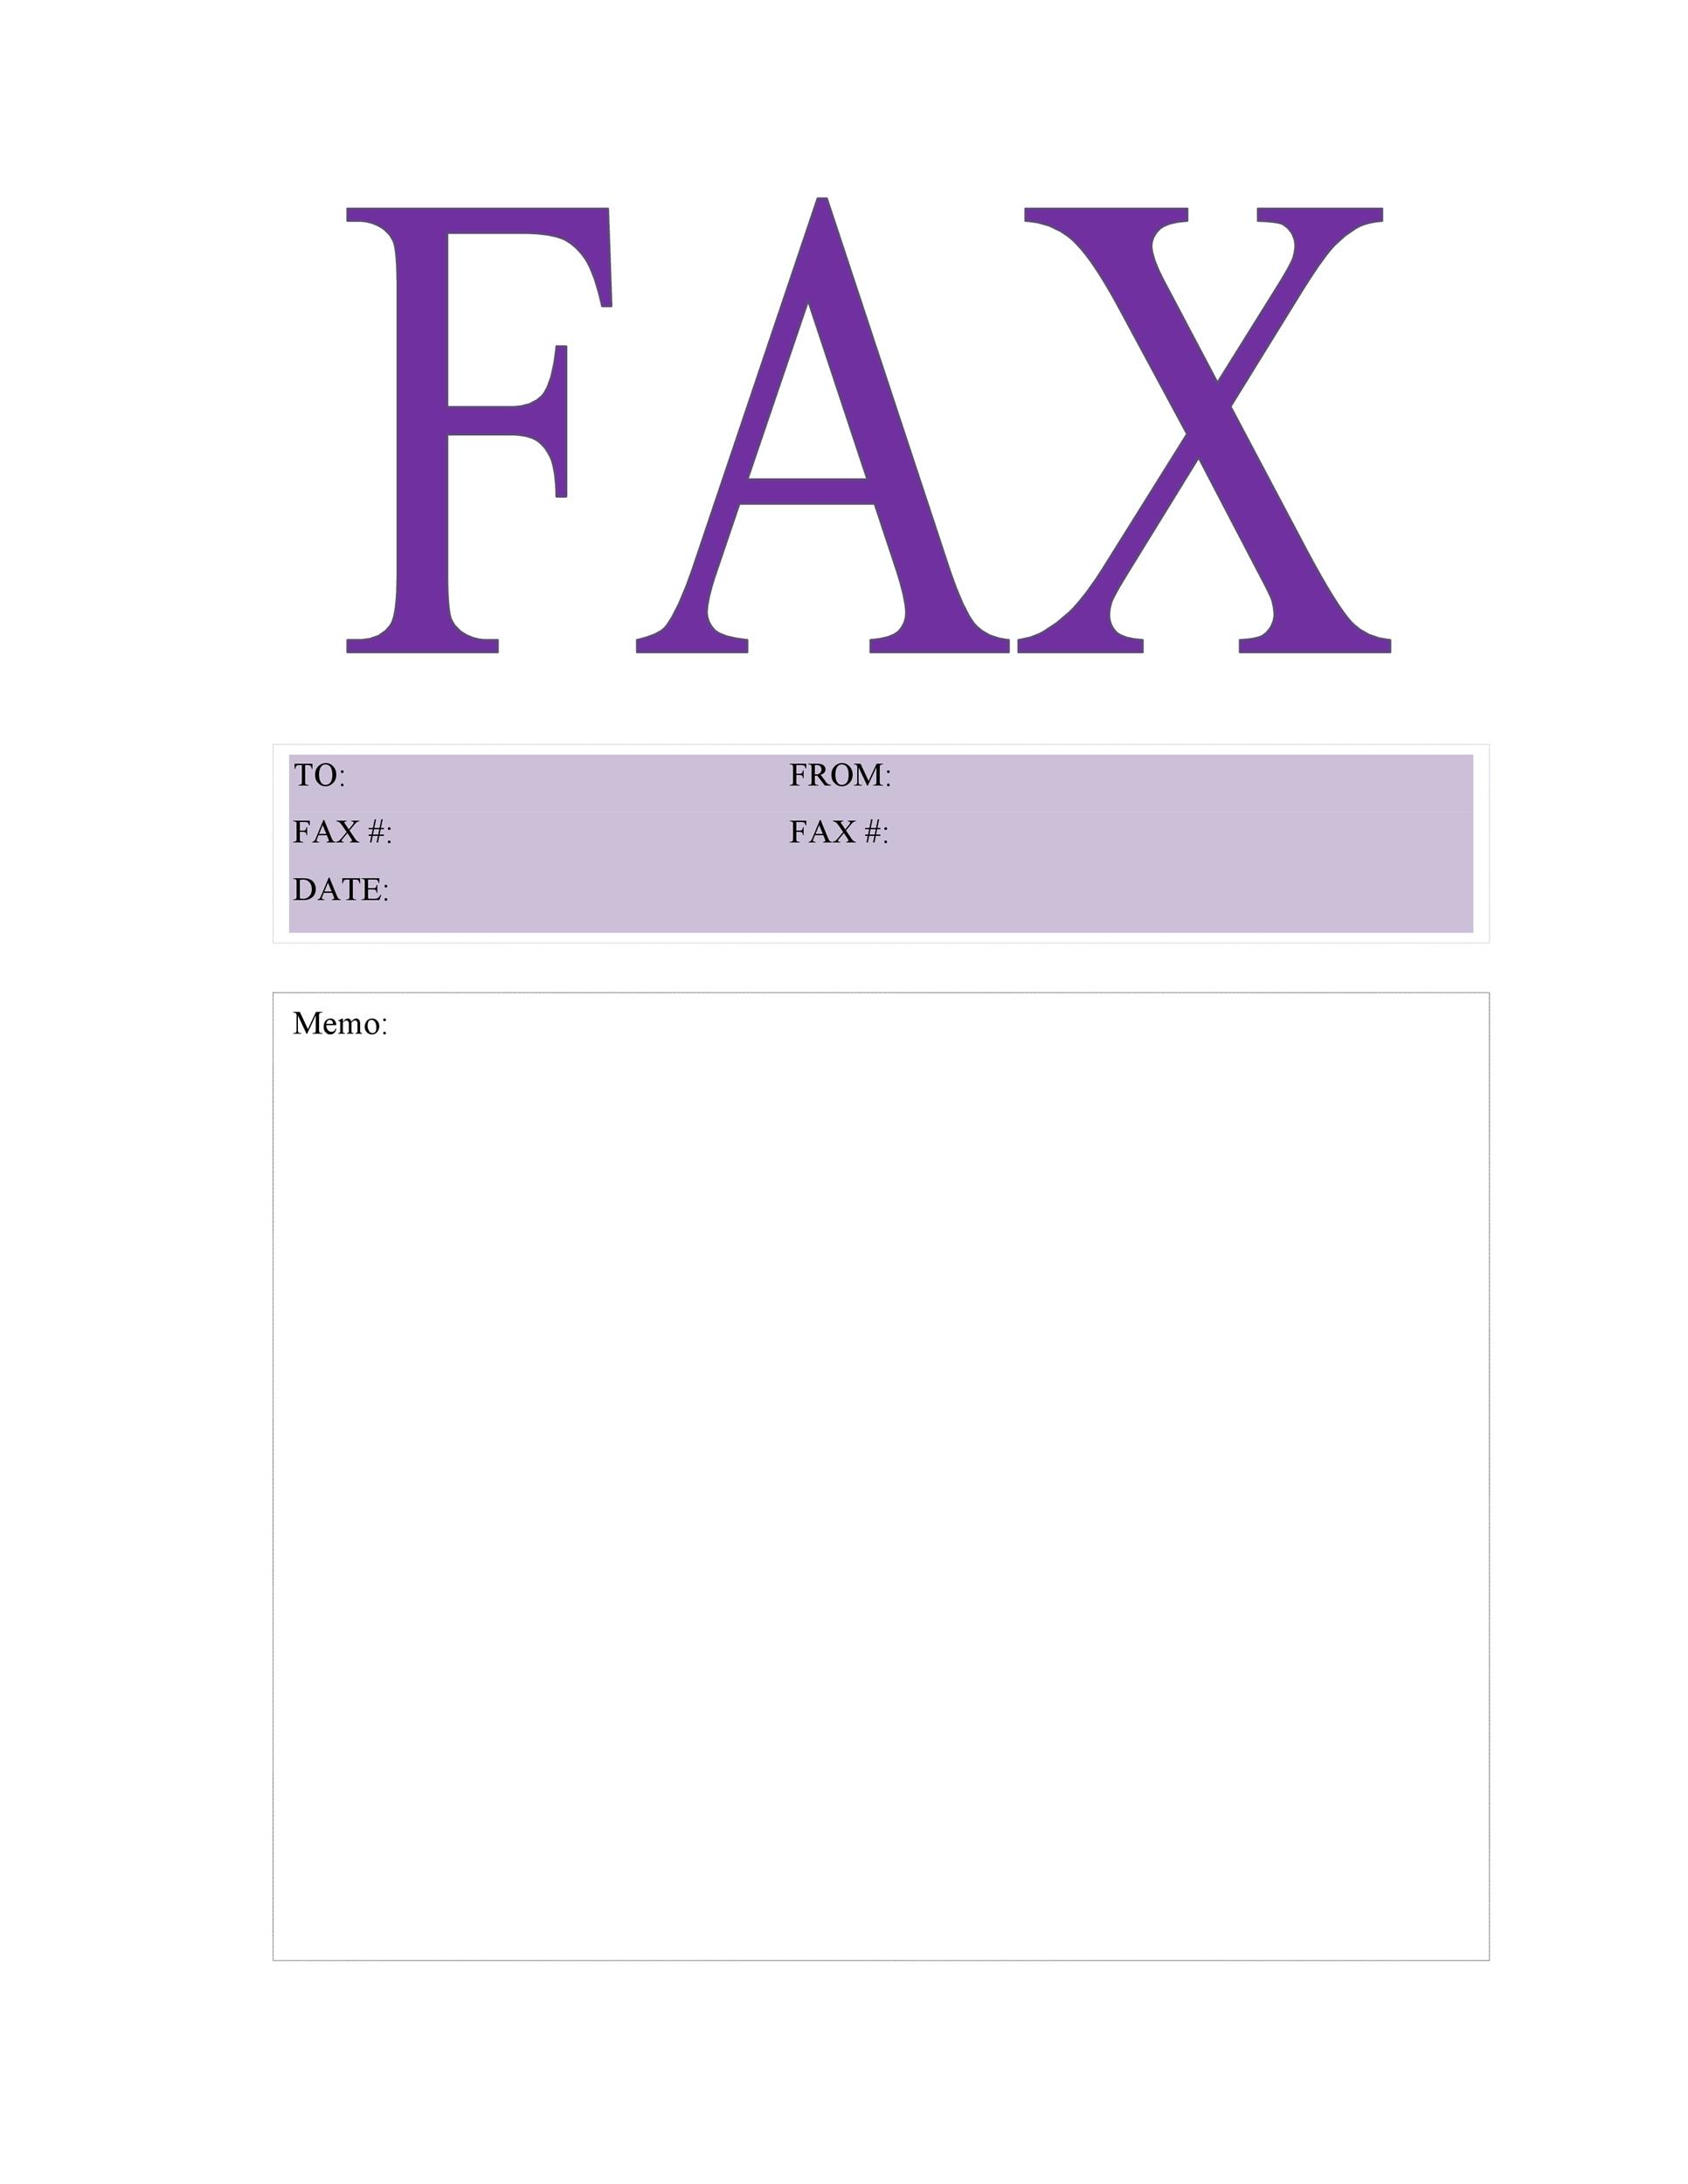 Fax Cover Sheet Template Fax Cover Sheet Template Pdf Format Sample